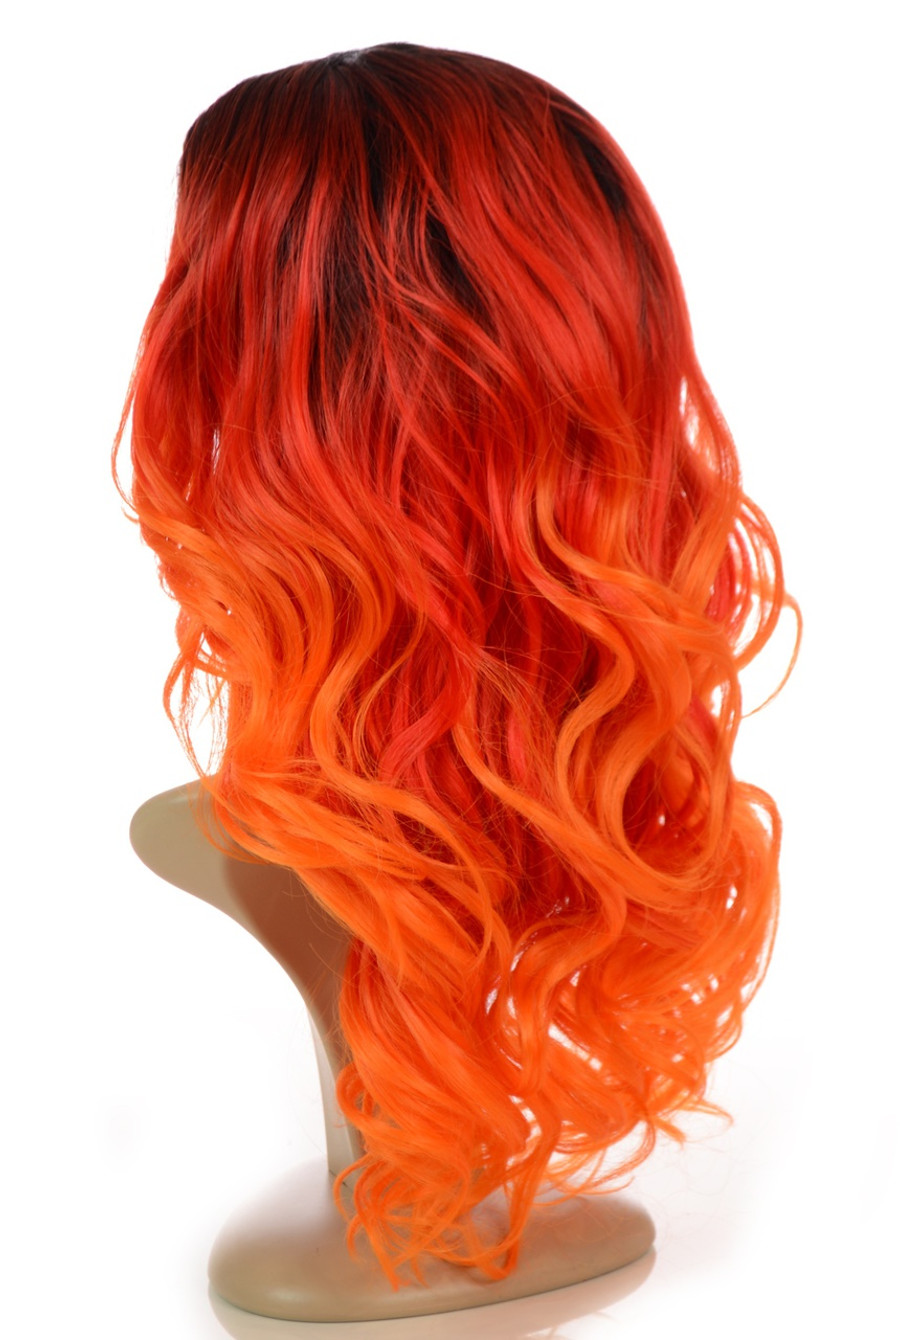 Lace Part Diva-Doll Wig